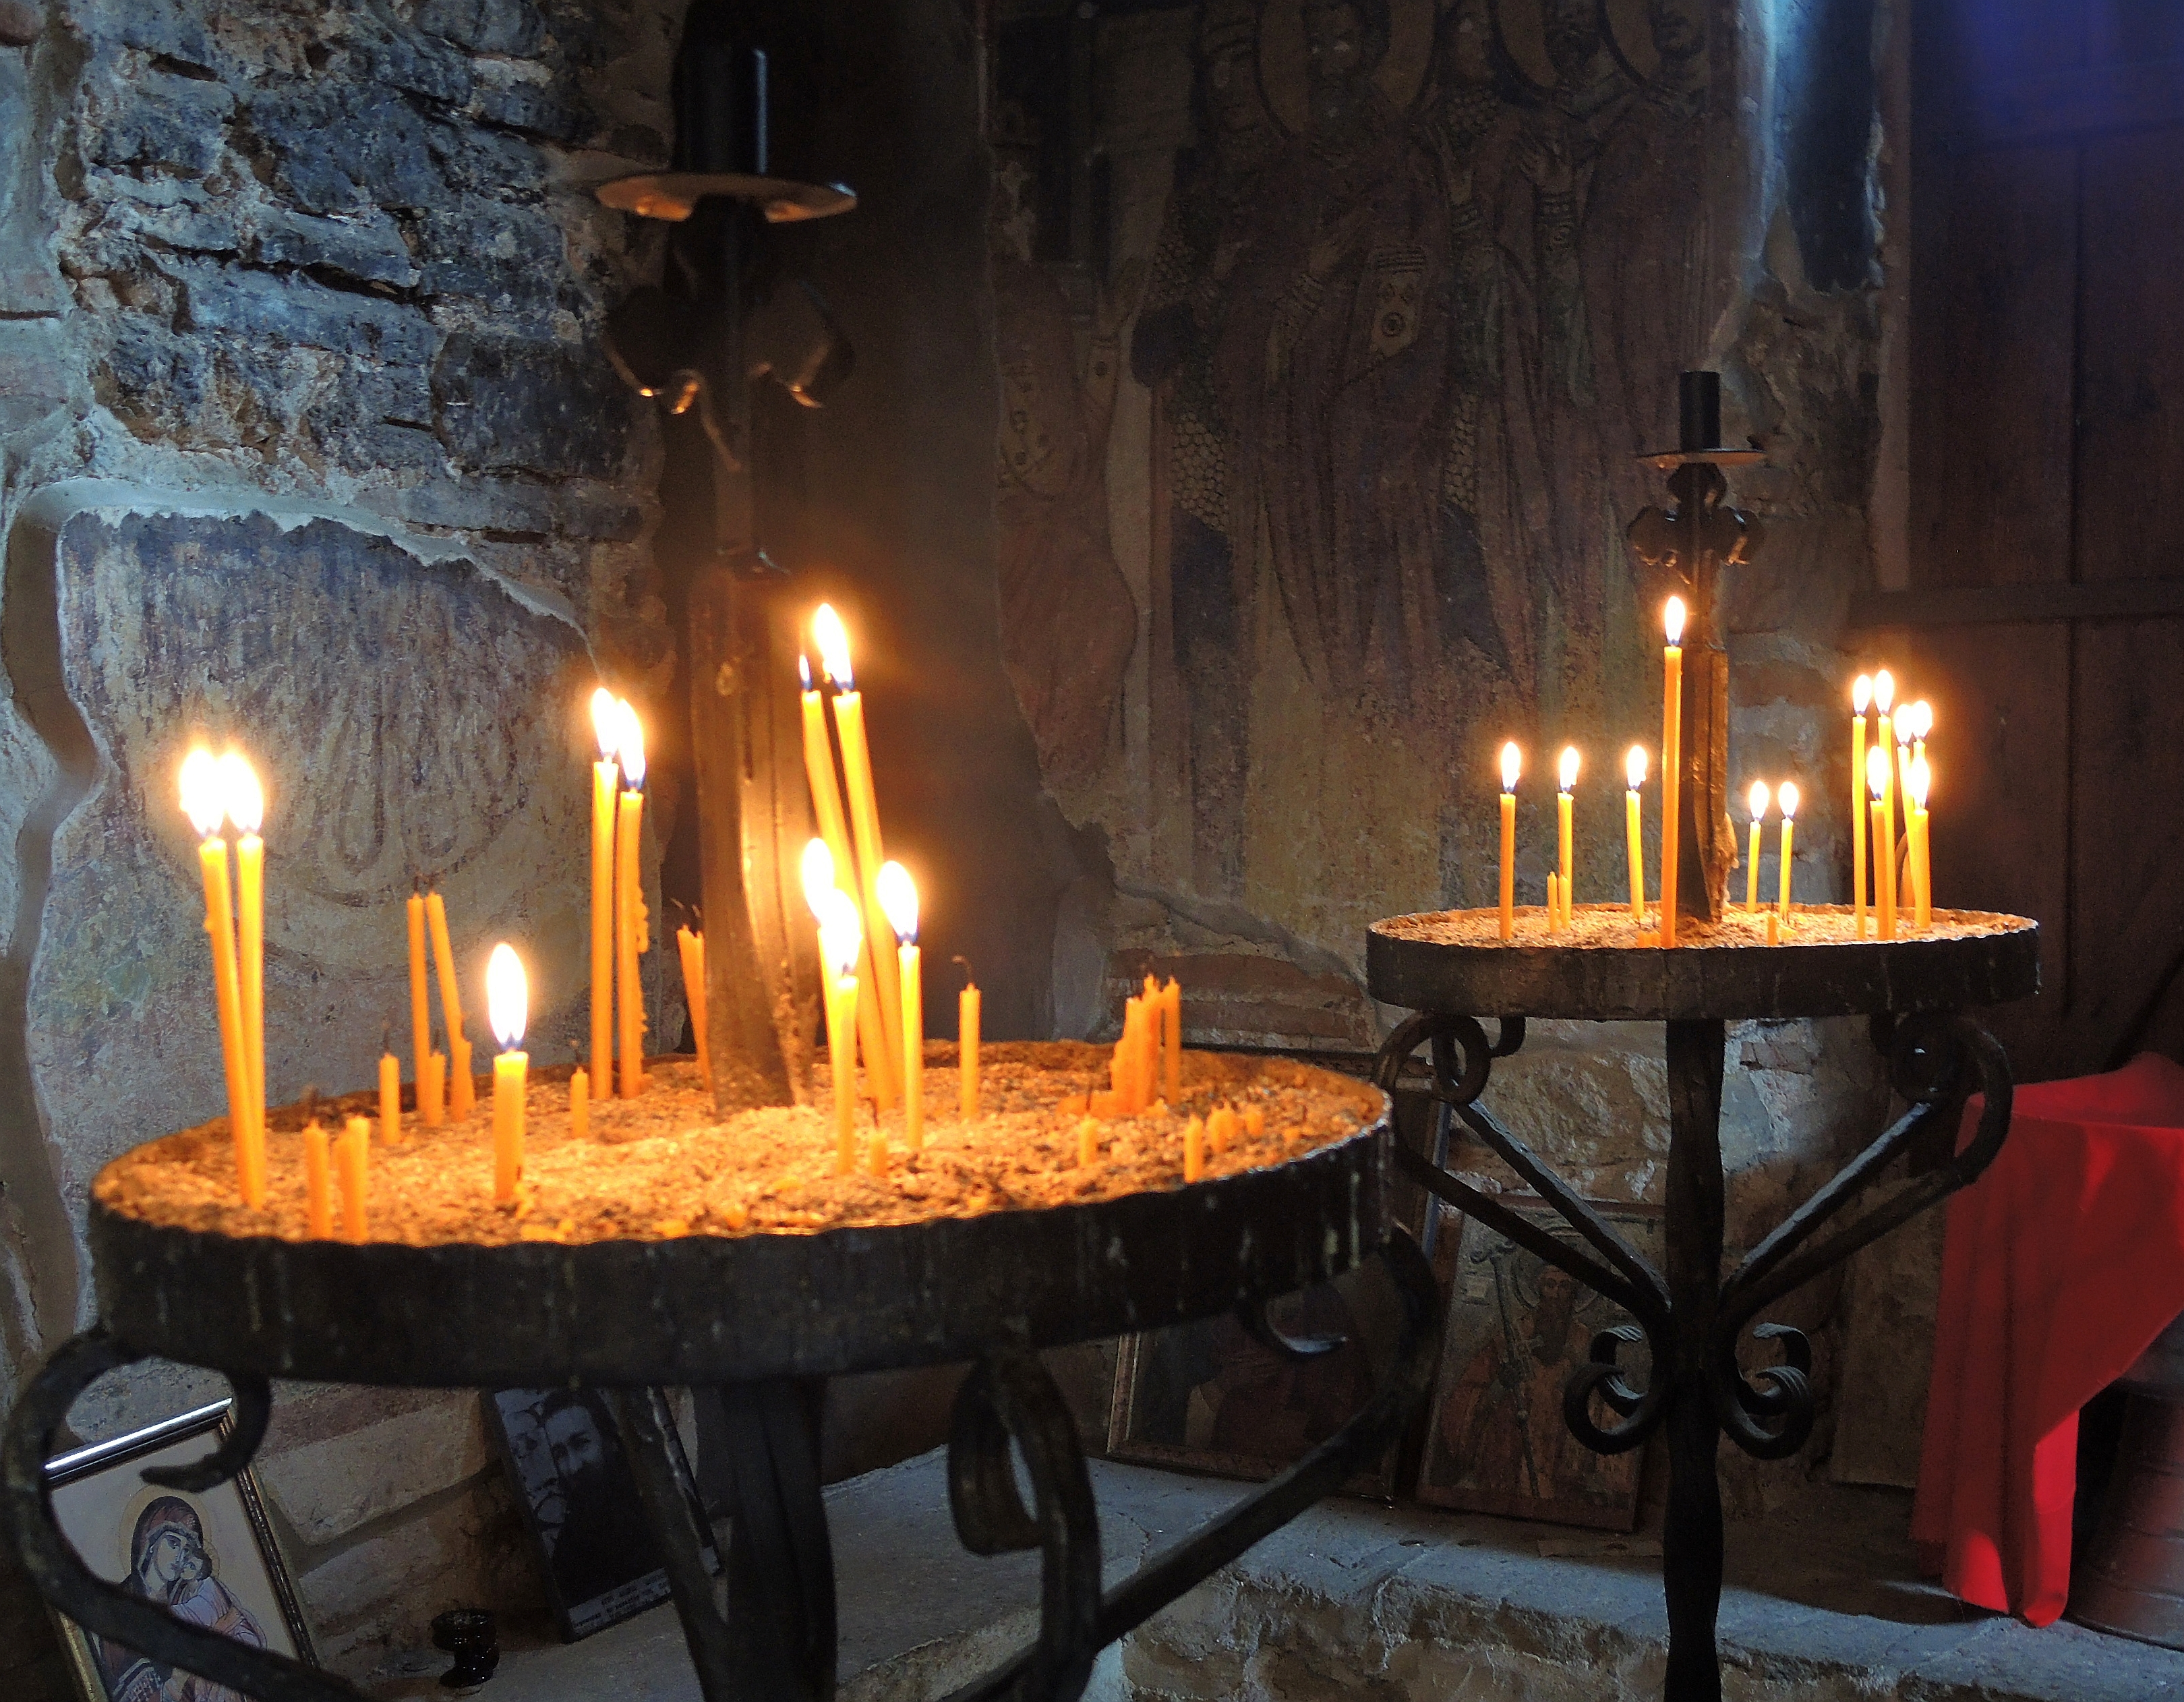 In front of stone walls, two round trays hold an array of slim, lit candles